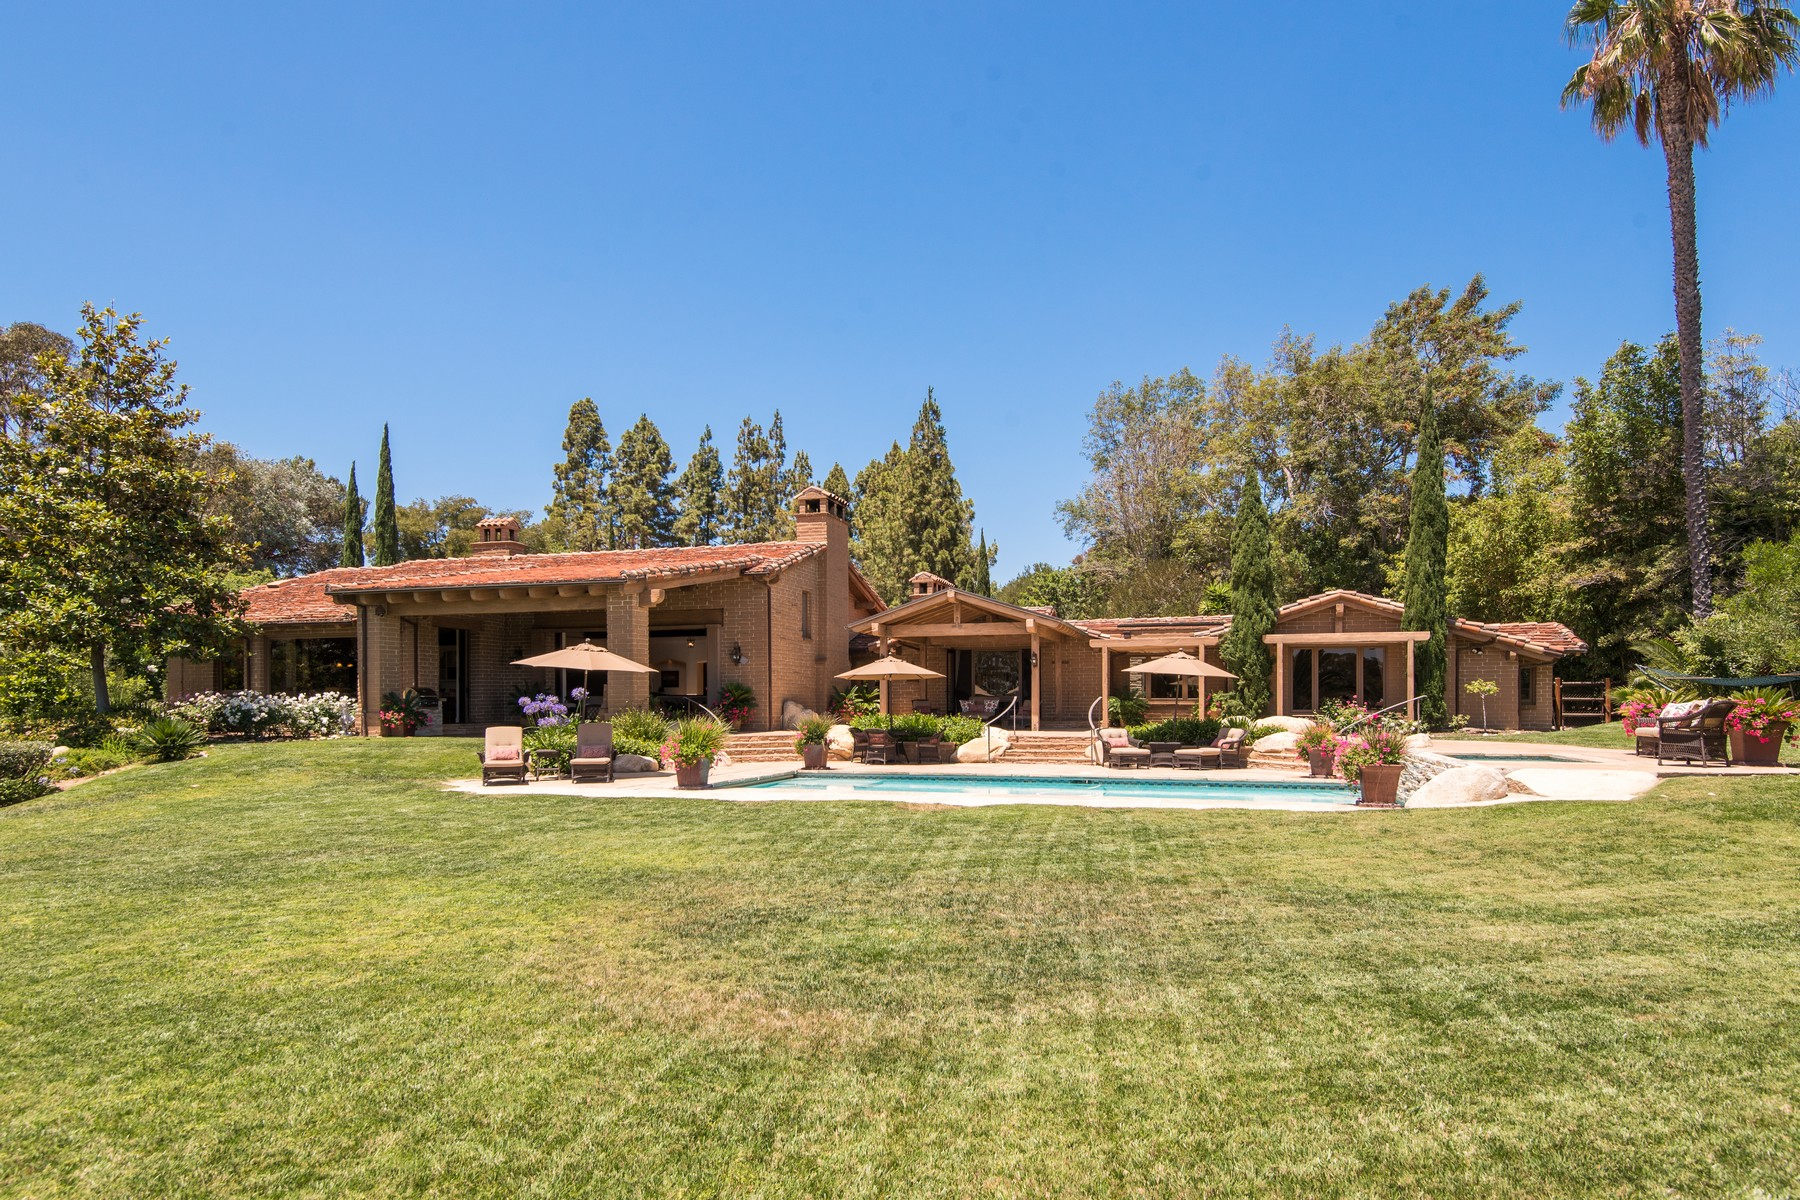 Additional photo for property listing at 6083 Mimulus  Rancho Santa Fe, California 92067 United States